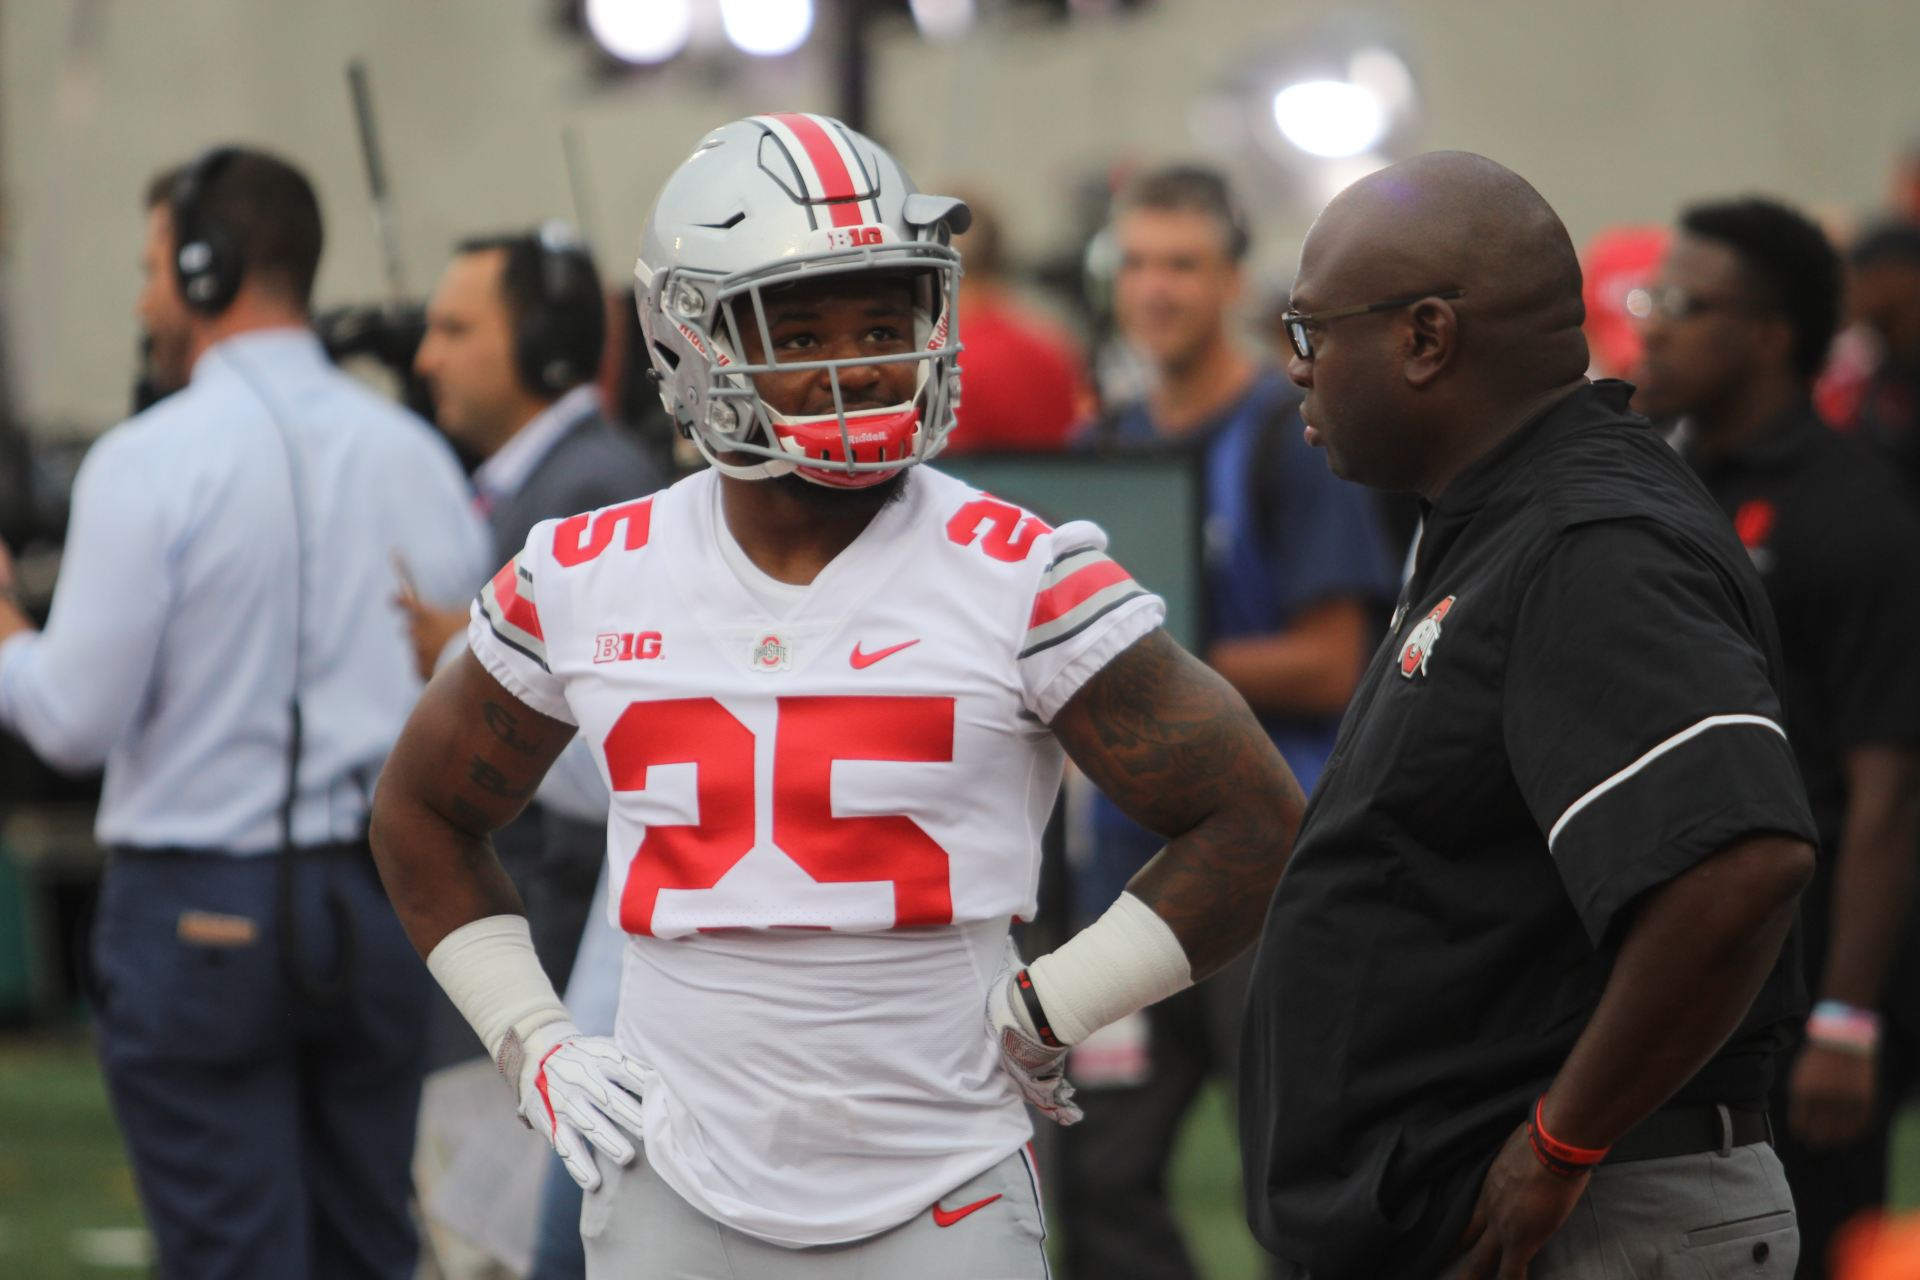 reputable site 629bf 71df0 Football: How will Ohio State rotate running backs J.K. ...